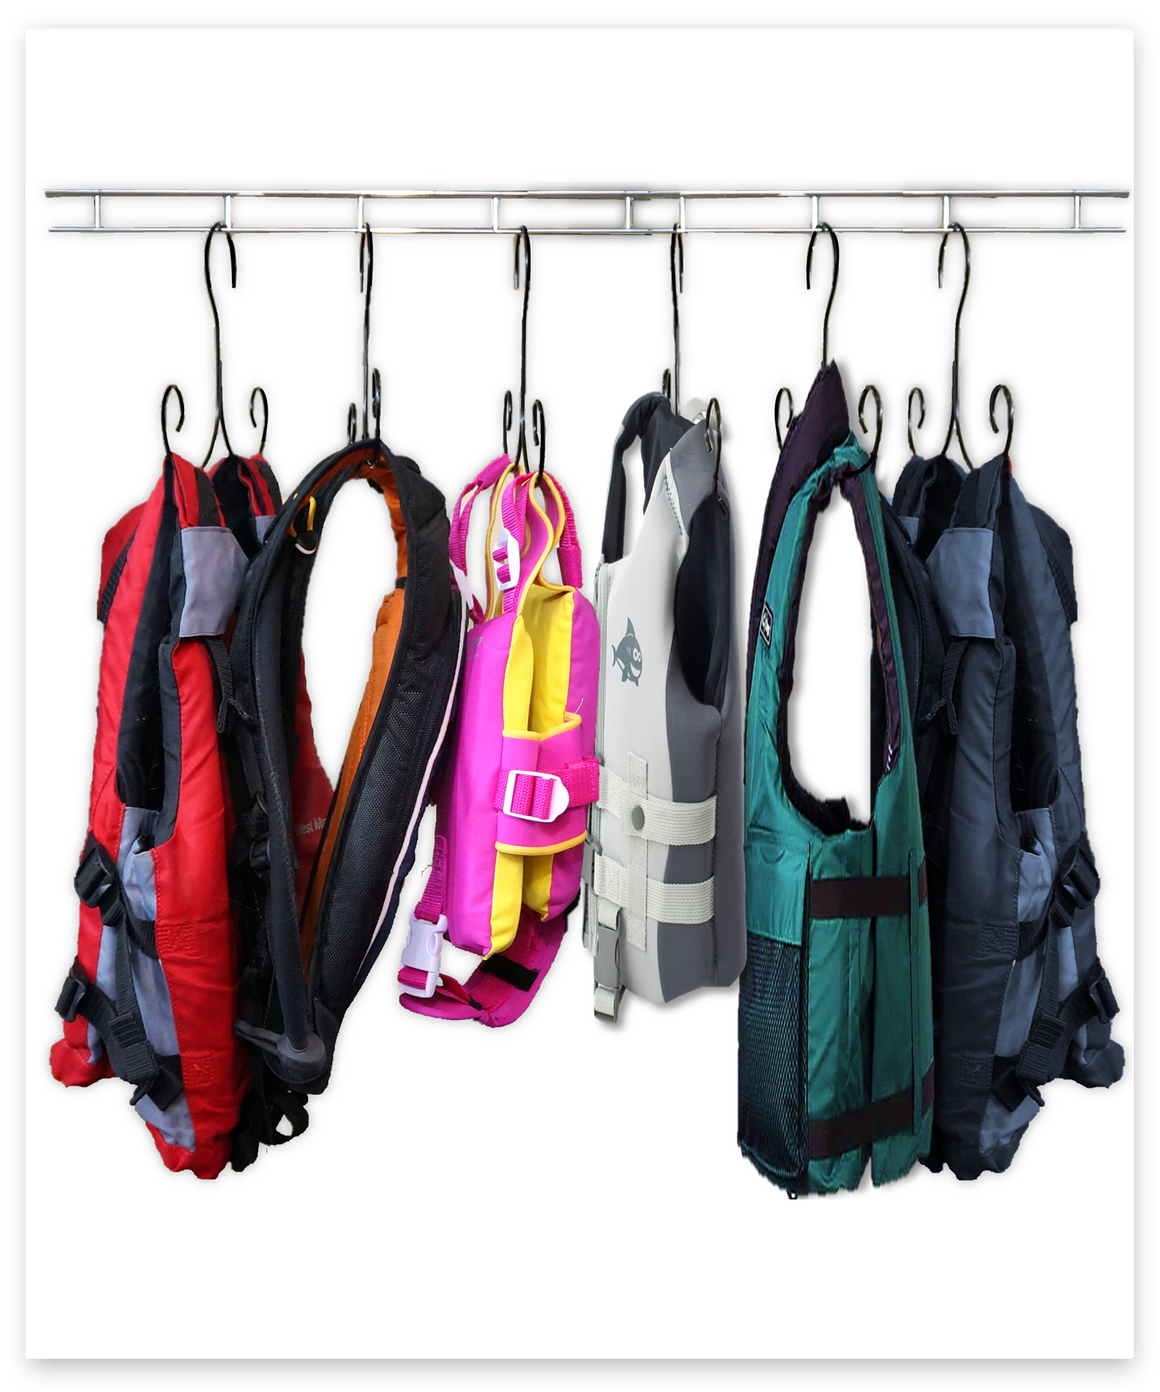 Life Jacket Hanger Dryer (Set of 5 Hangers) - Boottique